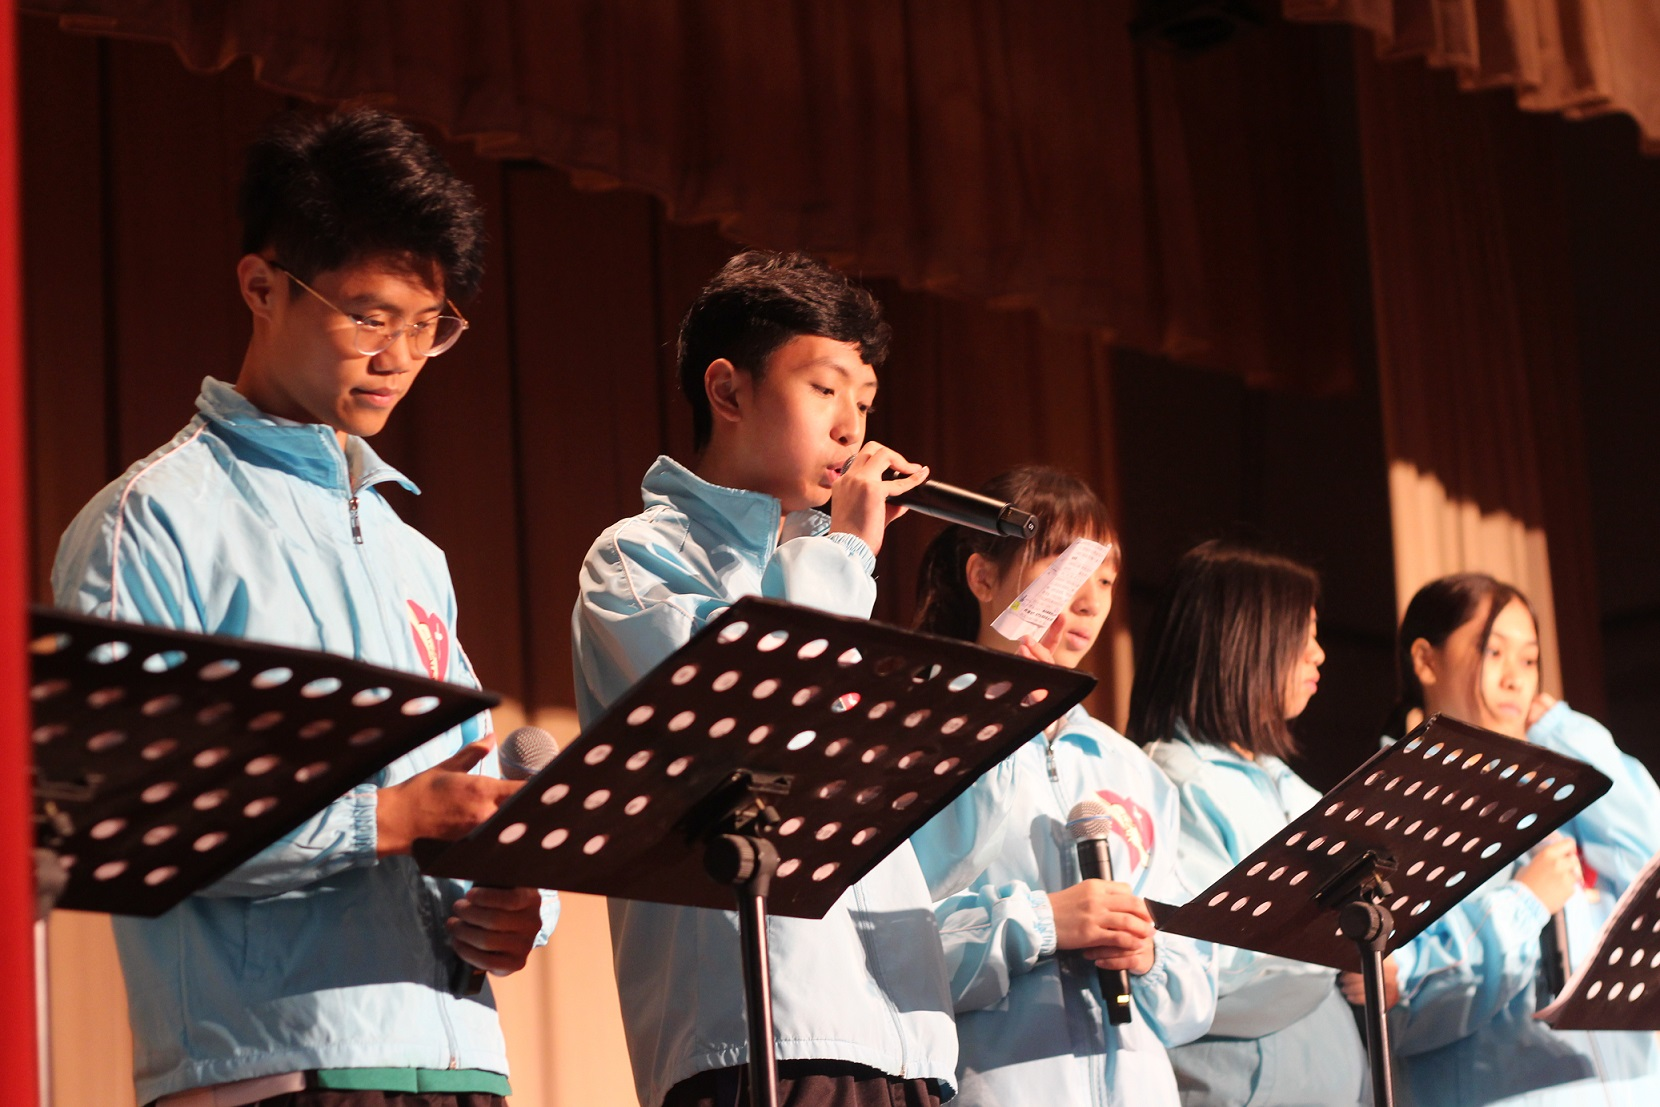 Our school students participate in religious activities actively